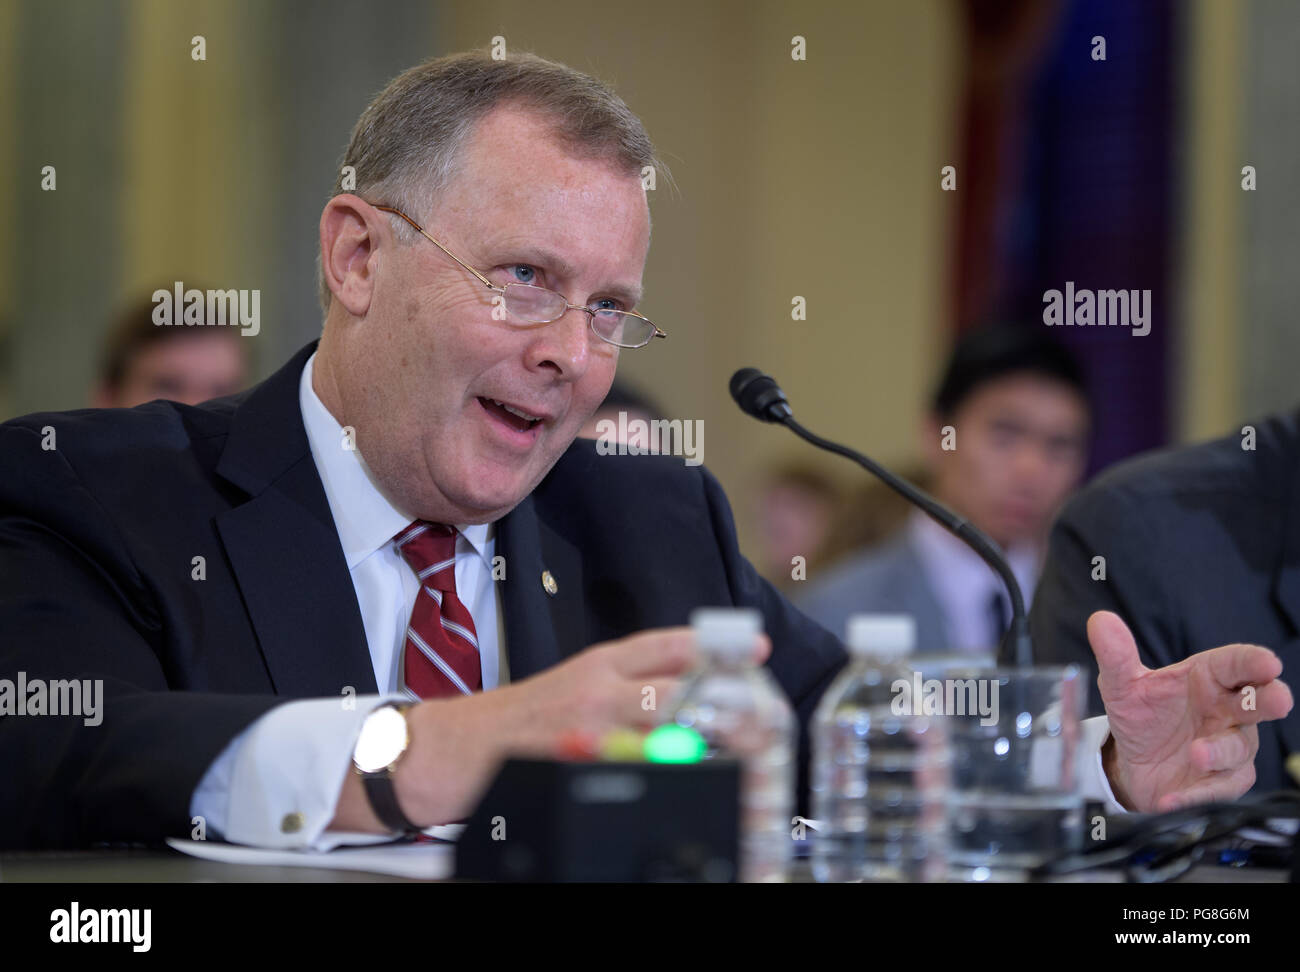 Washington, DC, USA. 23rd Aug, 2018. Deputy Senate Sergeant at Arms Jim Morhard appears before the Senate Committee on Commerce, Science, and Transportation as the nominee for Deputy Administrator of NASA on Thursday, Aug. 23, 2018 in the Russell Senate Office Building in Washington. Photo Credit: (NASA/Bill Ingalls) National Aeronautics and Space Administration via globallookpress.com Credit: National Aeronautics And Space A/Russian Look/ZUMA Wire/Alamy Live News - Stock Image